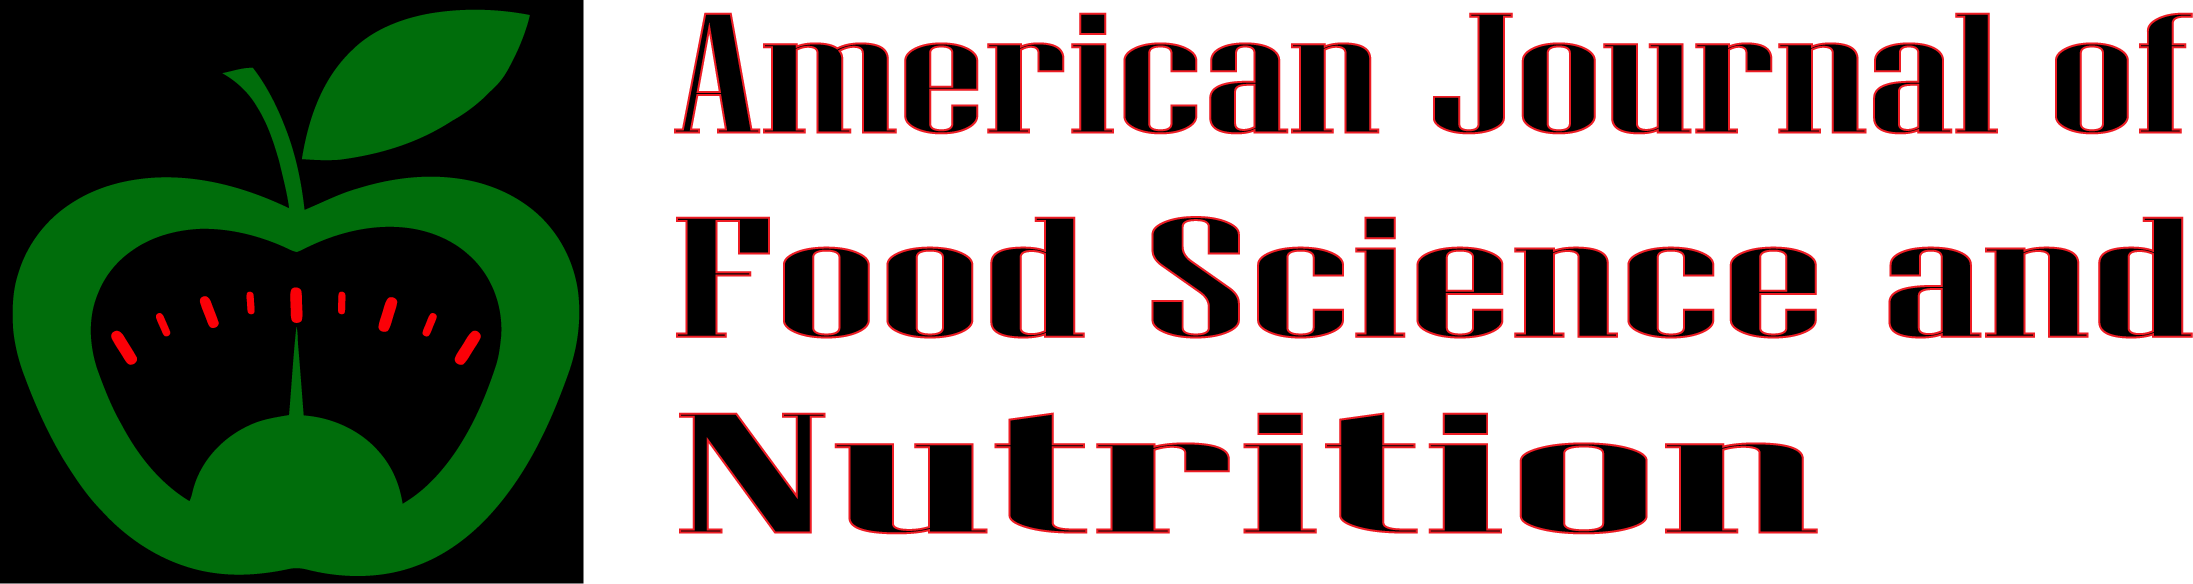 American Journal of Food Science and Nutrition (AJFSN)